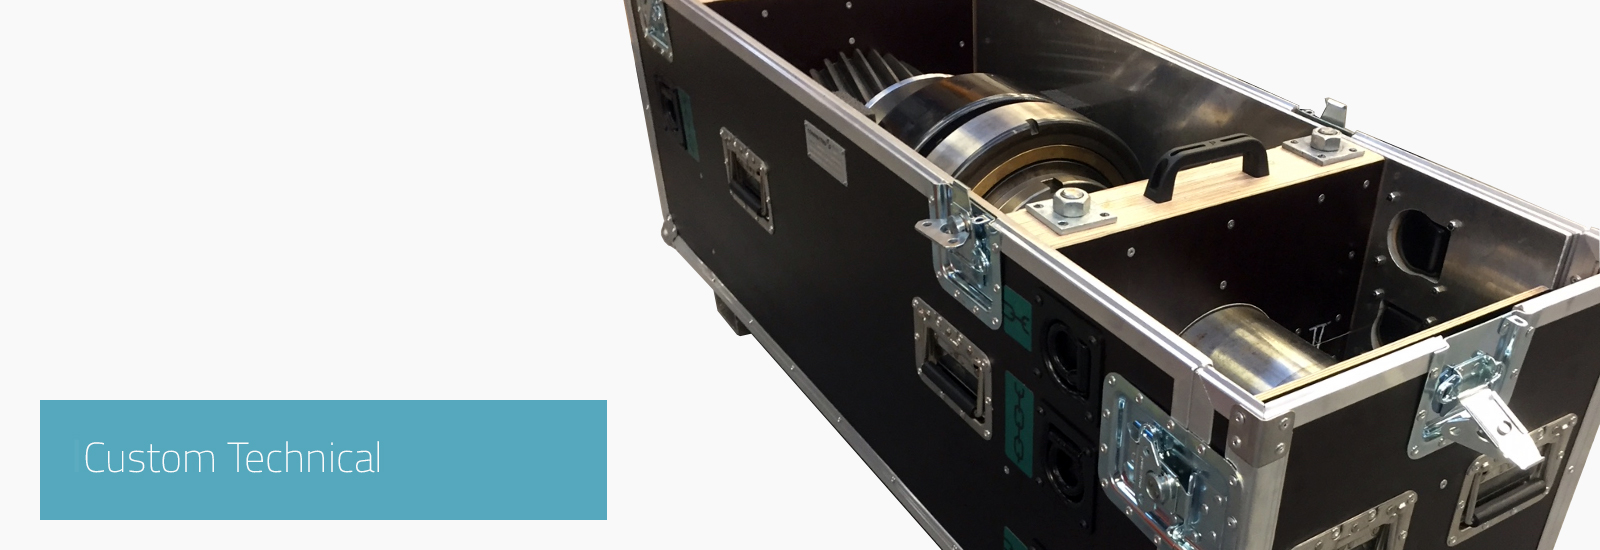 Flightcases International A/S - Flightcases